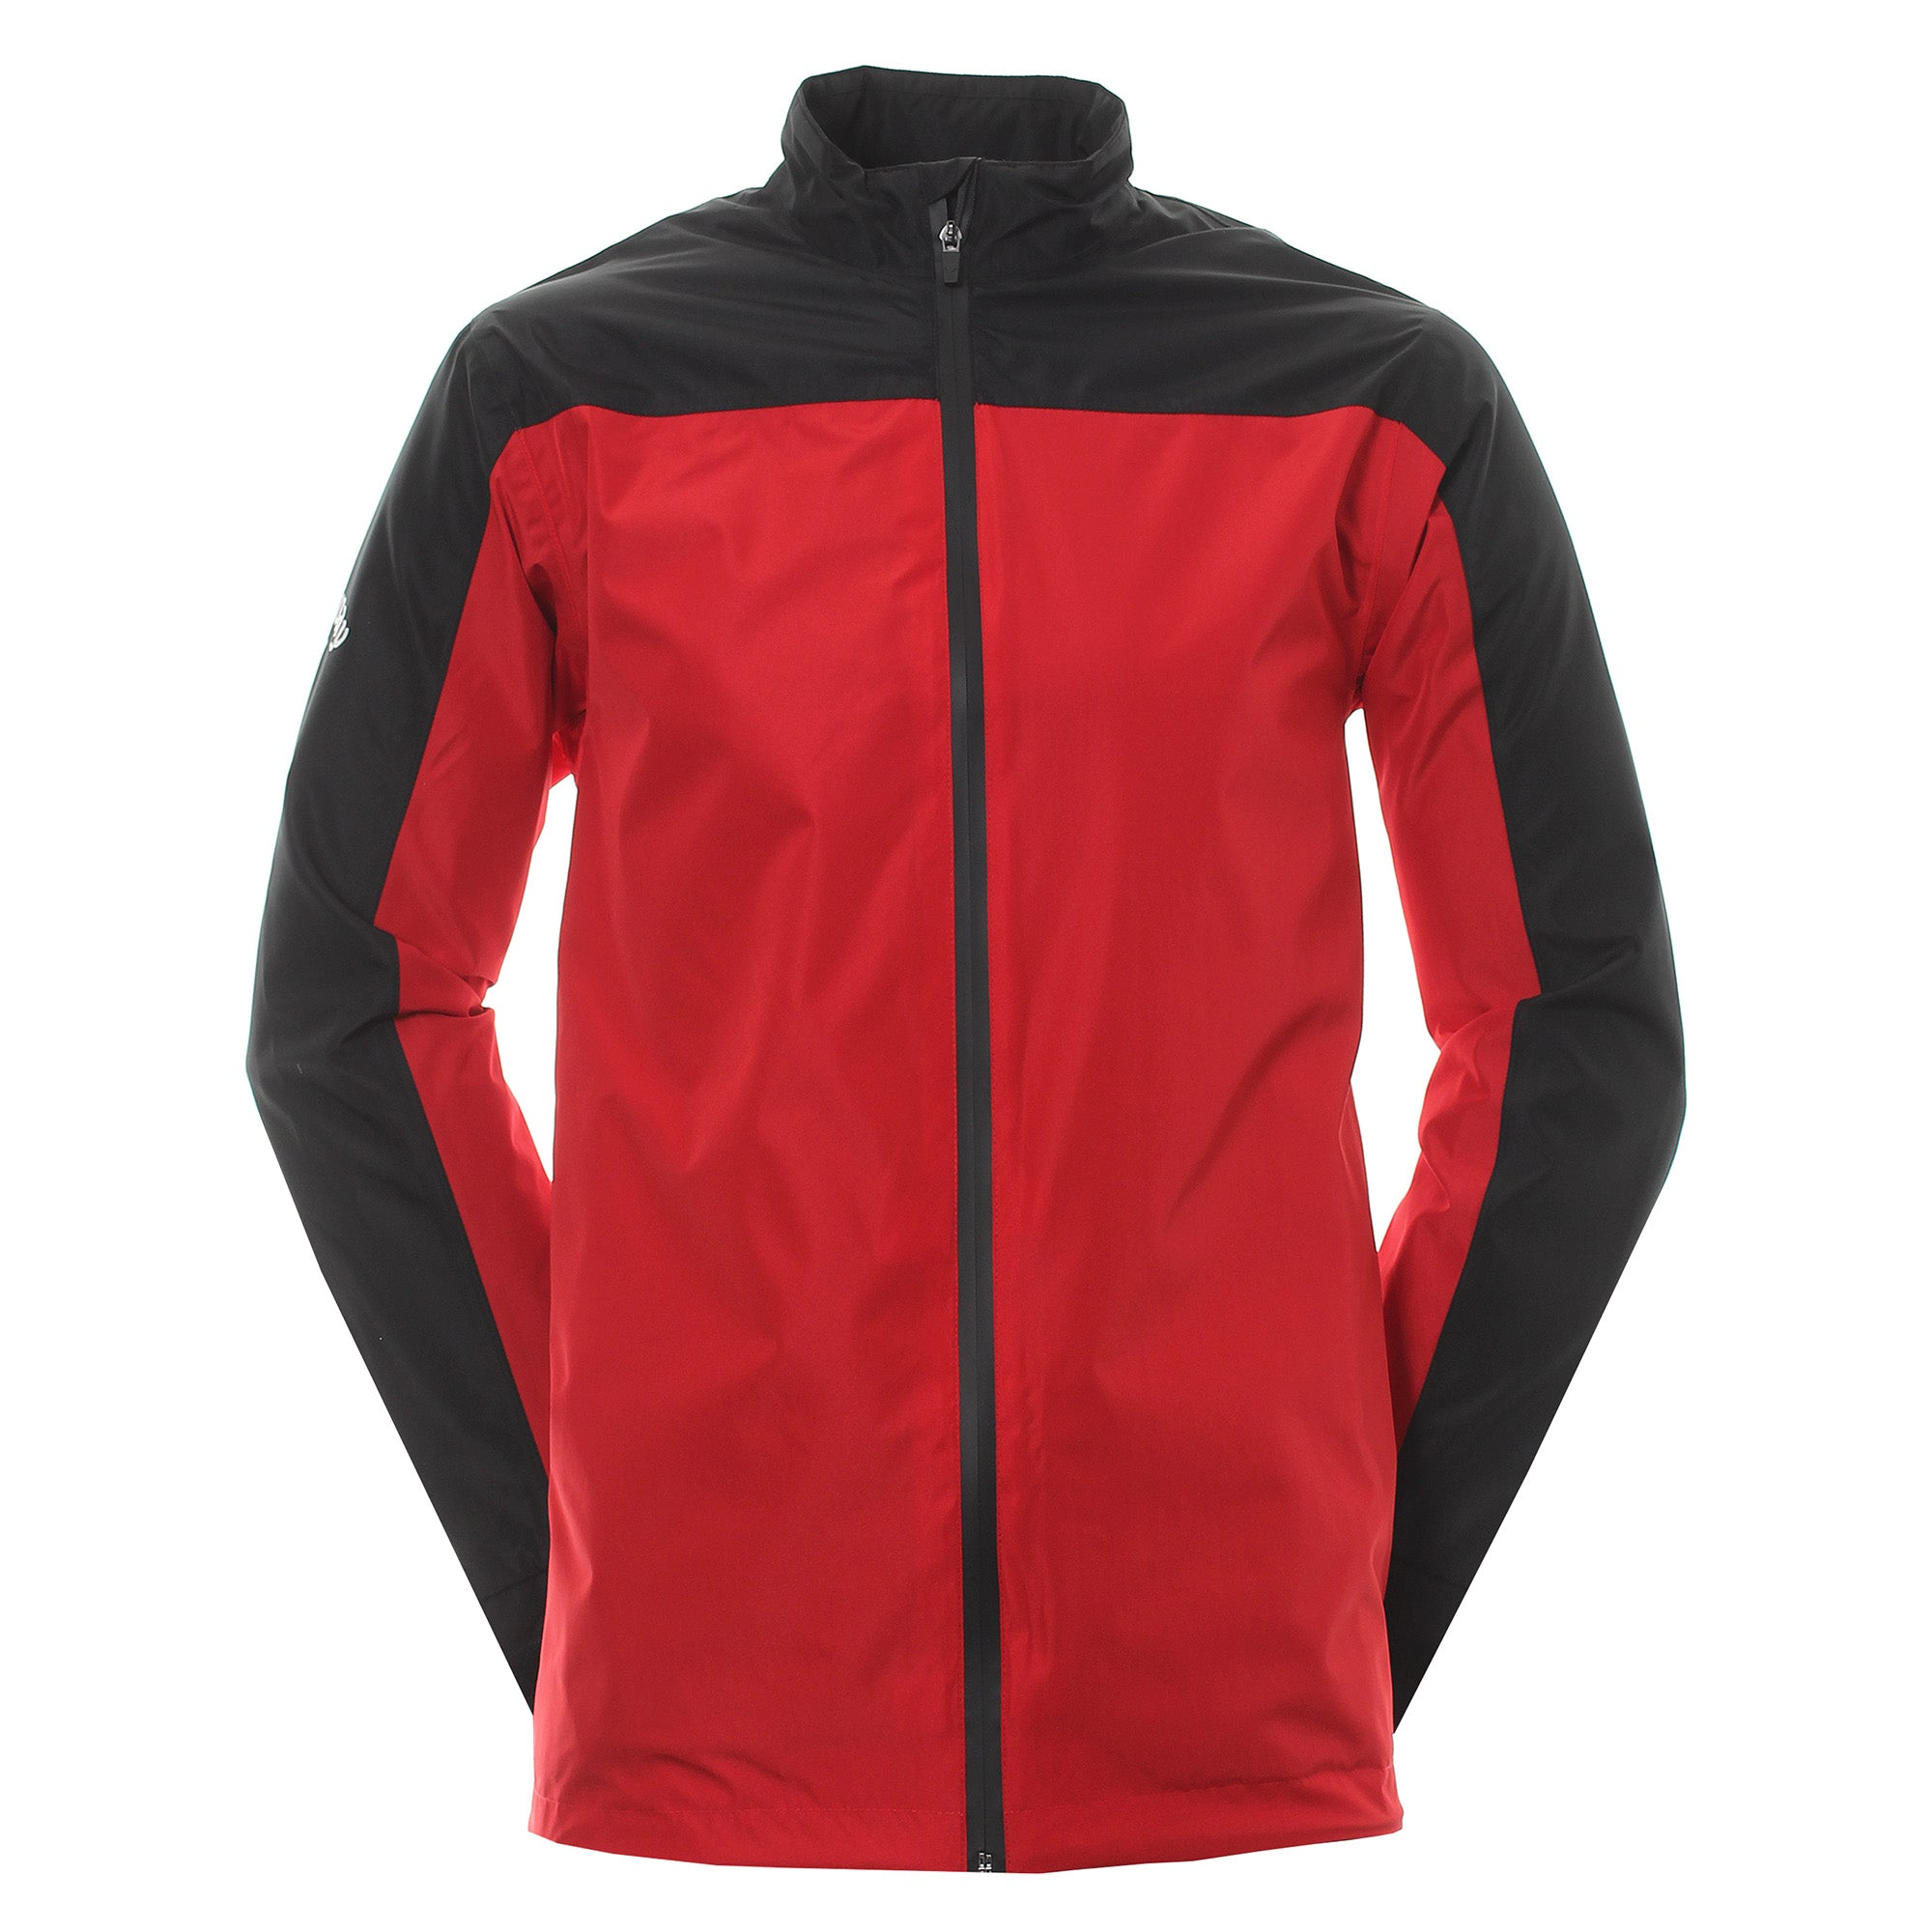 Callaway Golf Corporate Waterproof Jacket CGRR9013